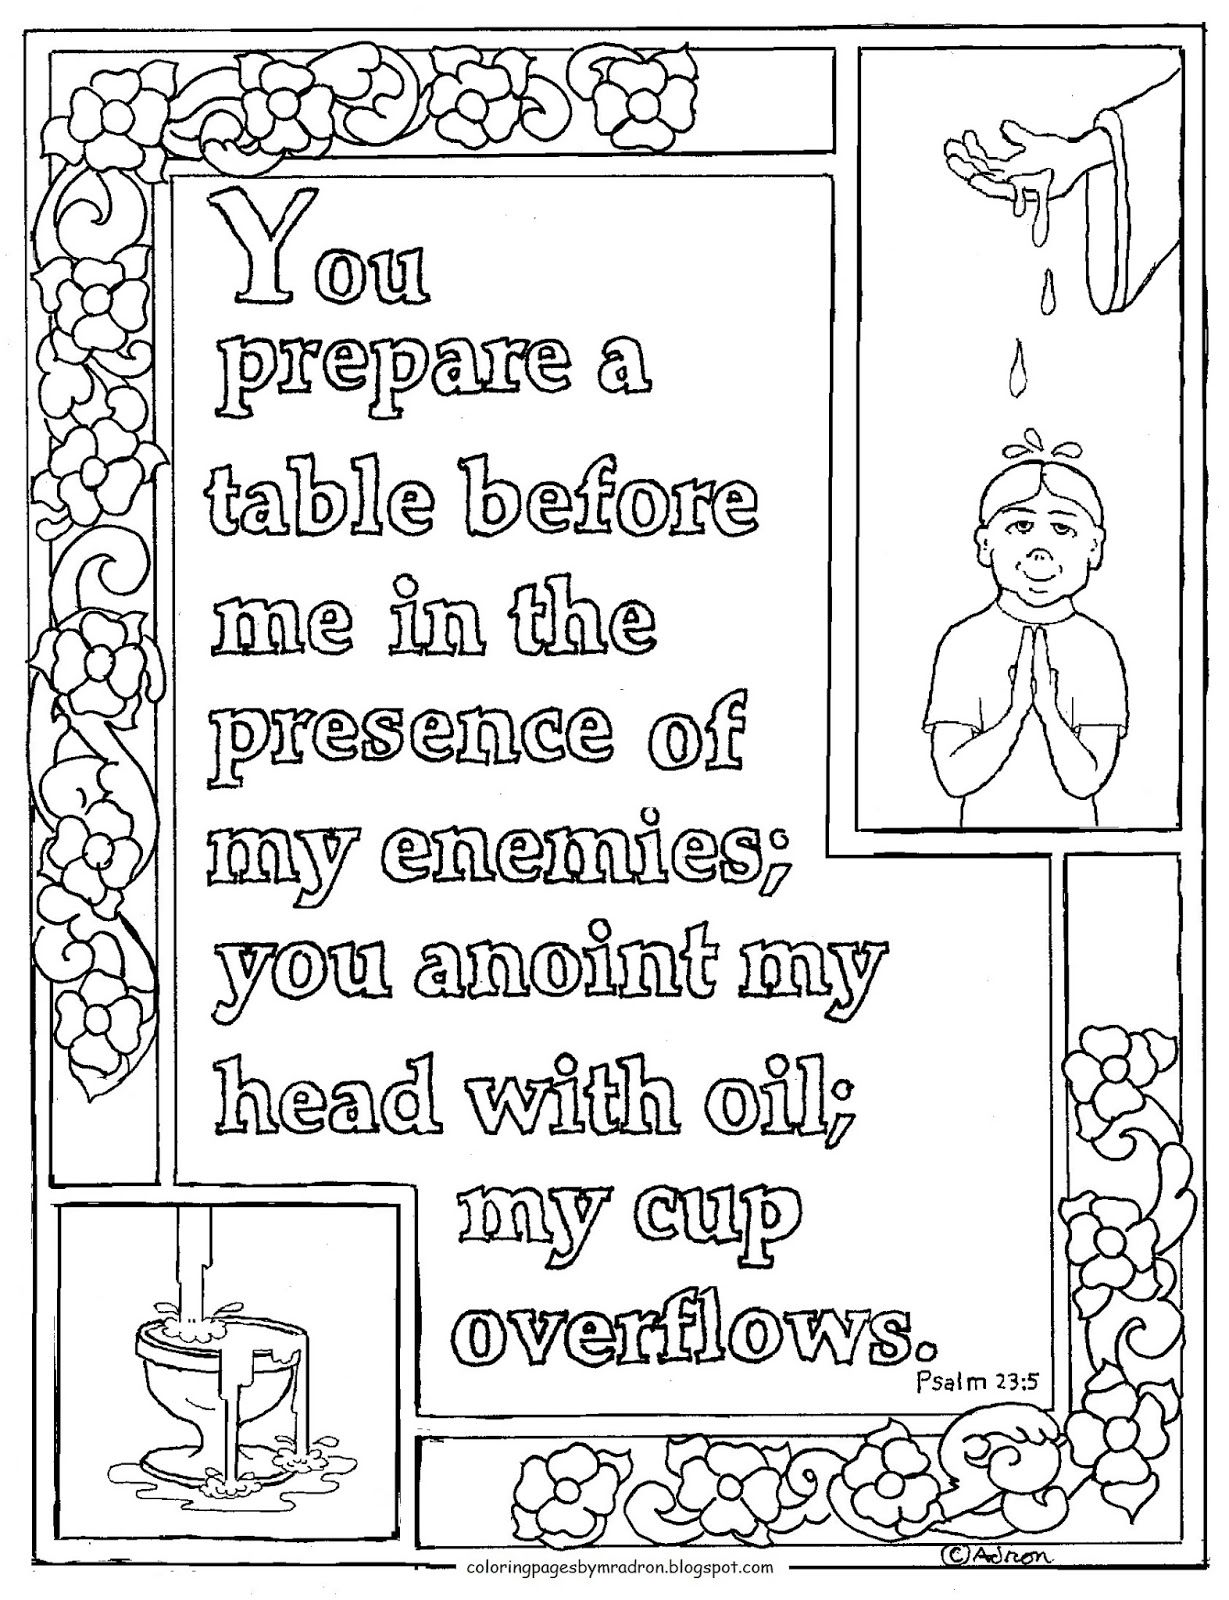 This Is A Free Psalm 23 5 Printable Coloring Page It Is